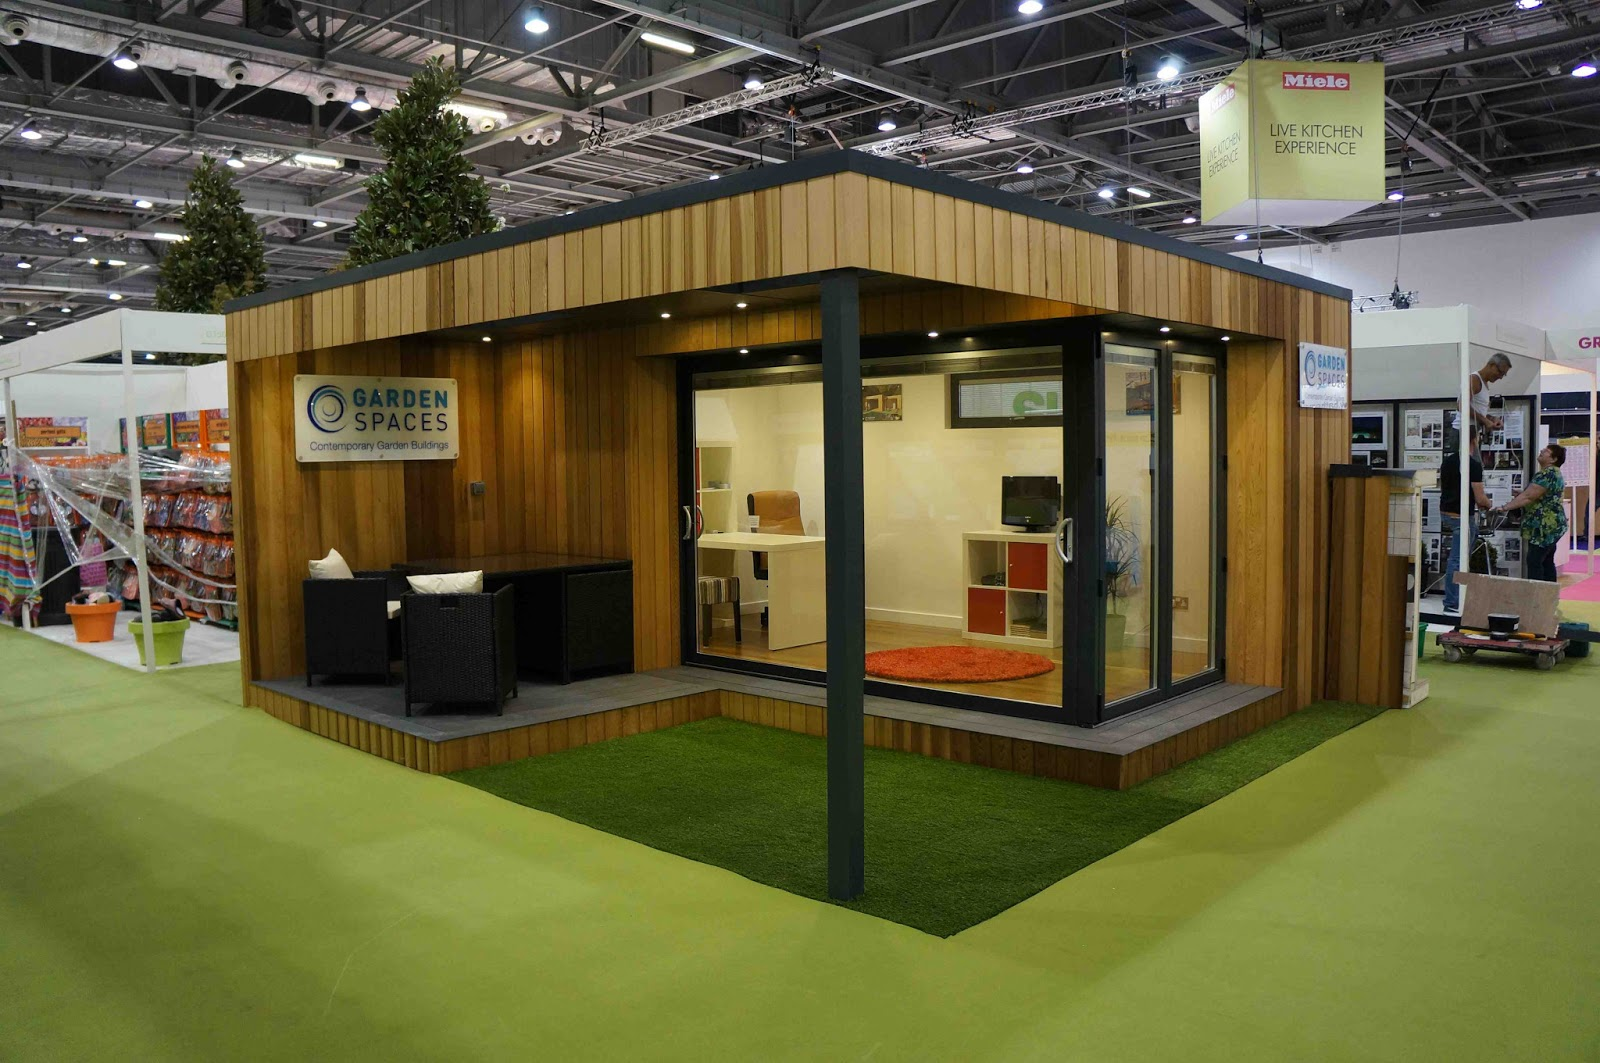 Shedworking garden offices at grand designs live for Garden office design